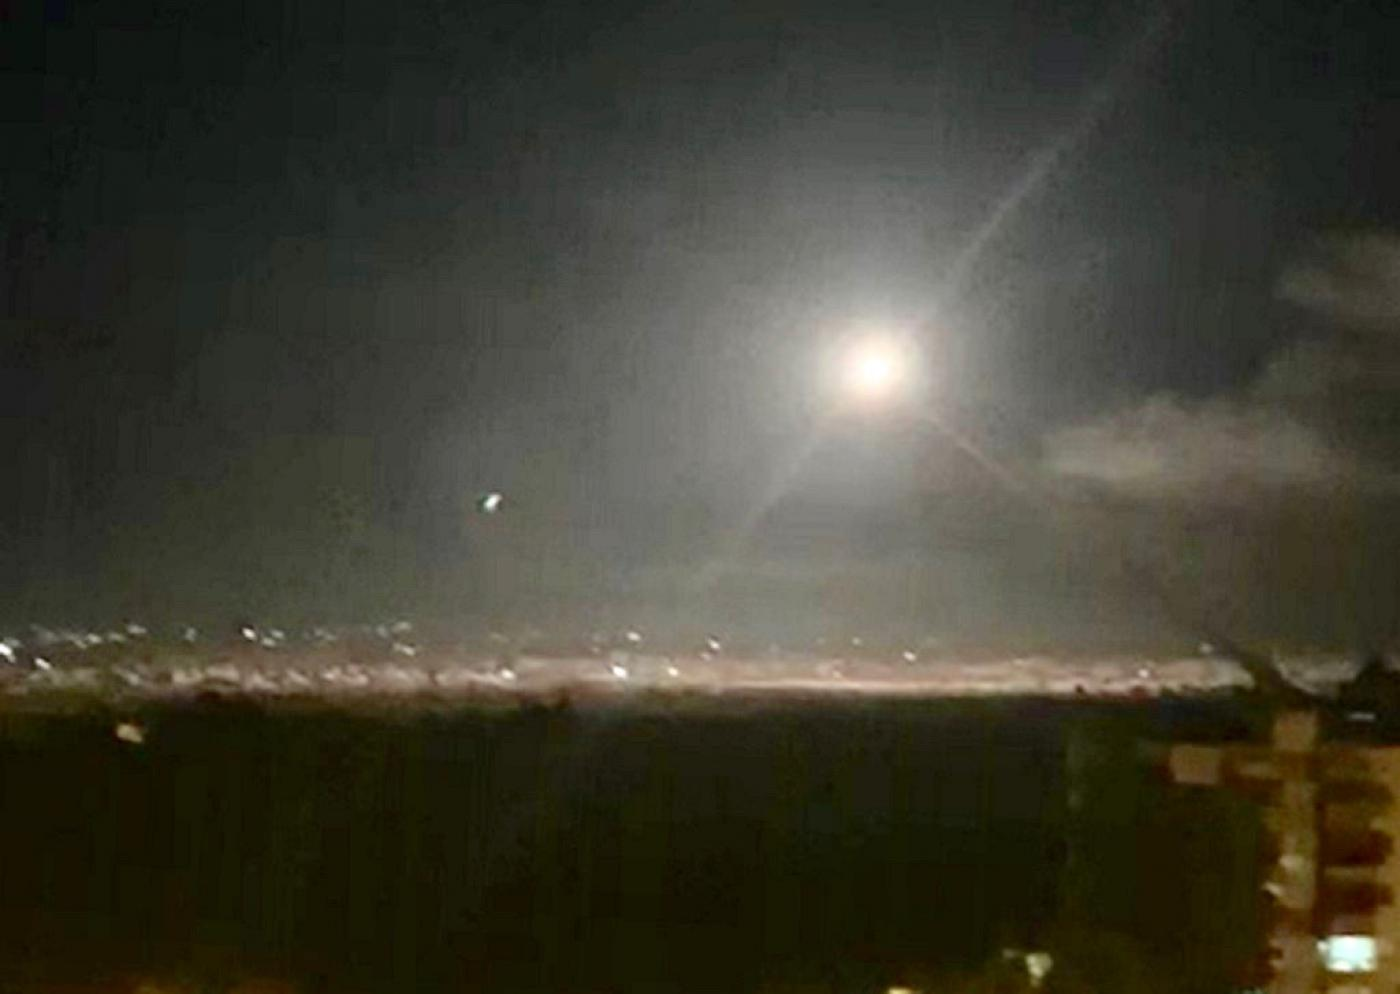 Syrian air defenses intercept Israeli missiles, state media reports